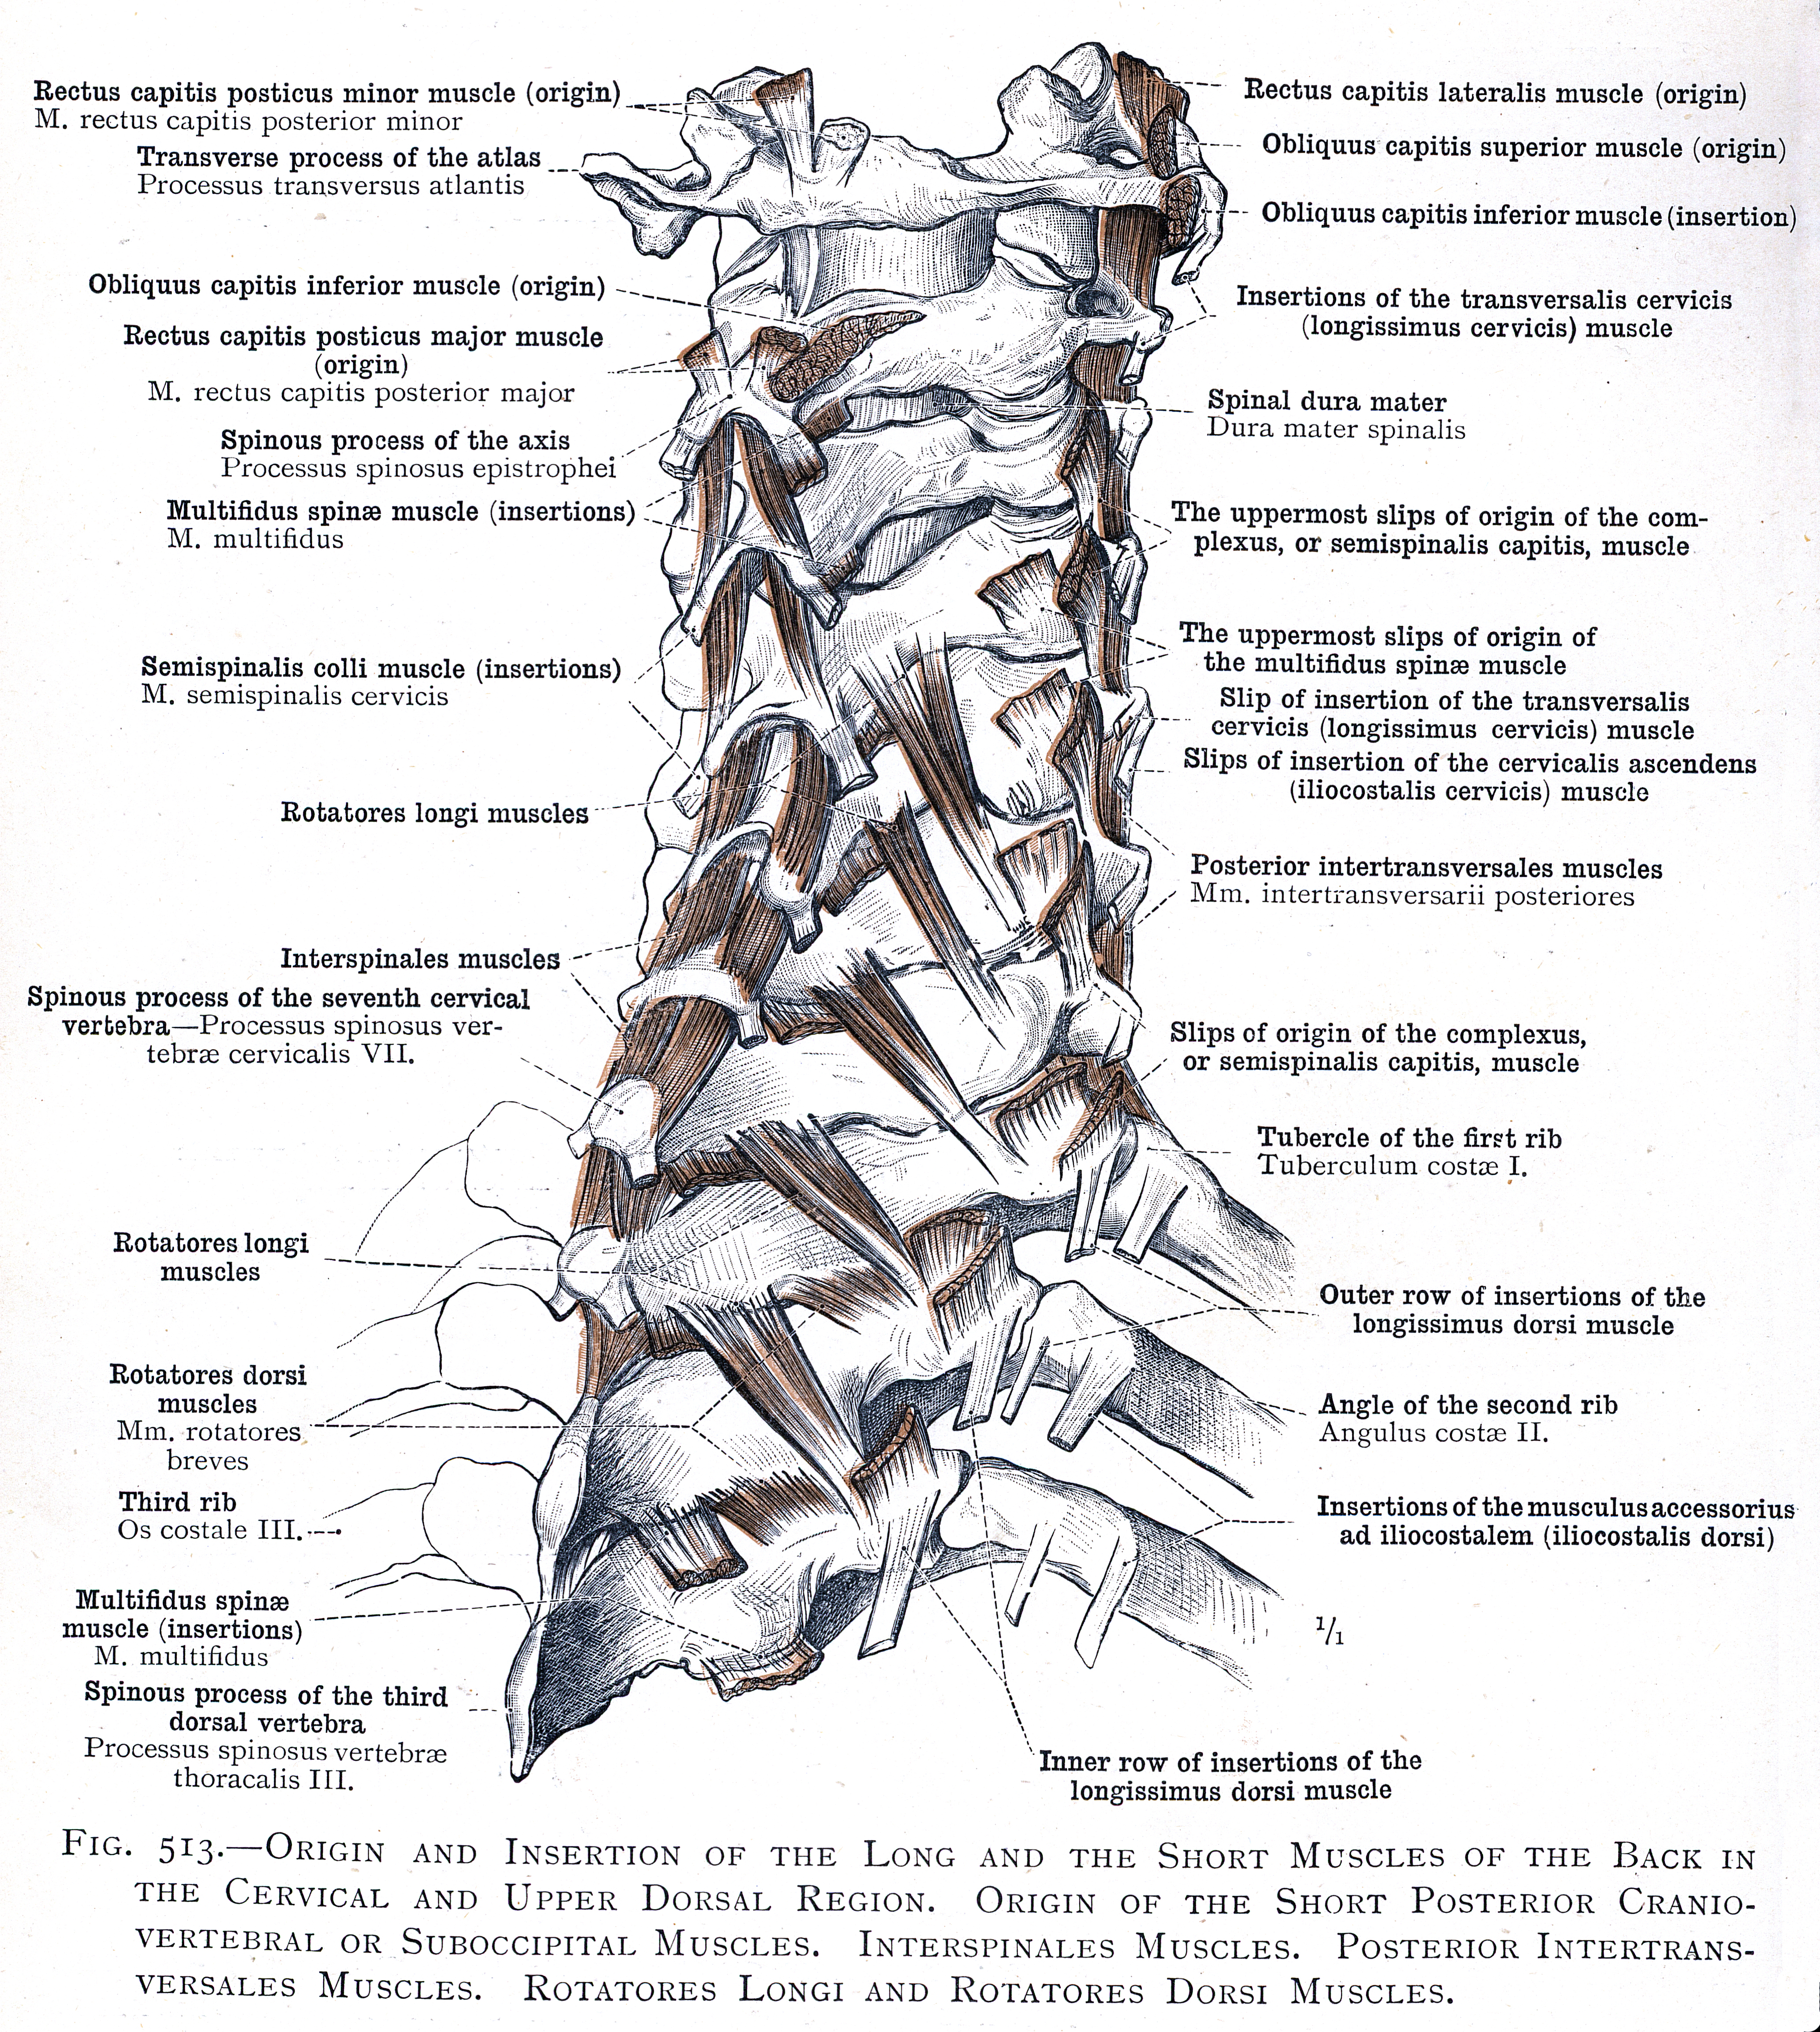 513 Origin And Insertion Of The Long And The Short Muscles Of The